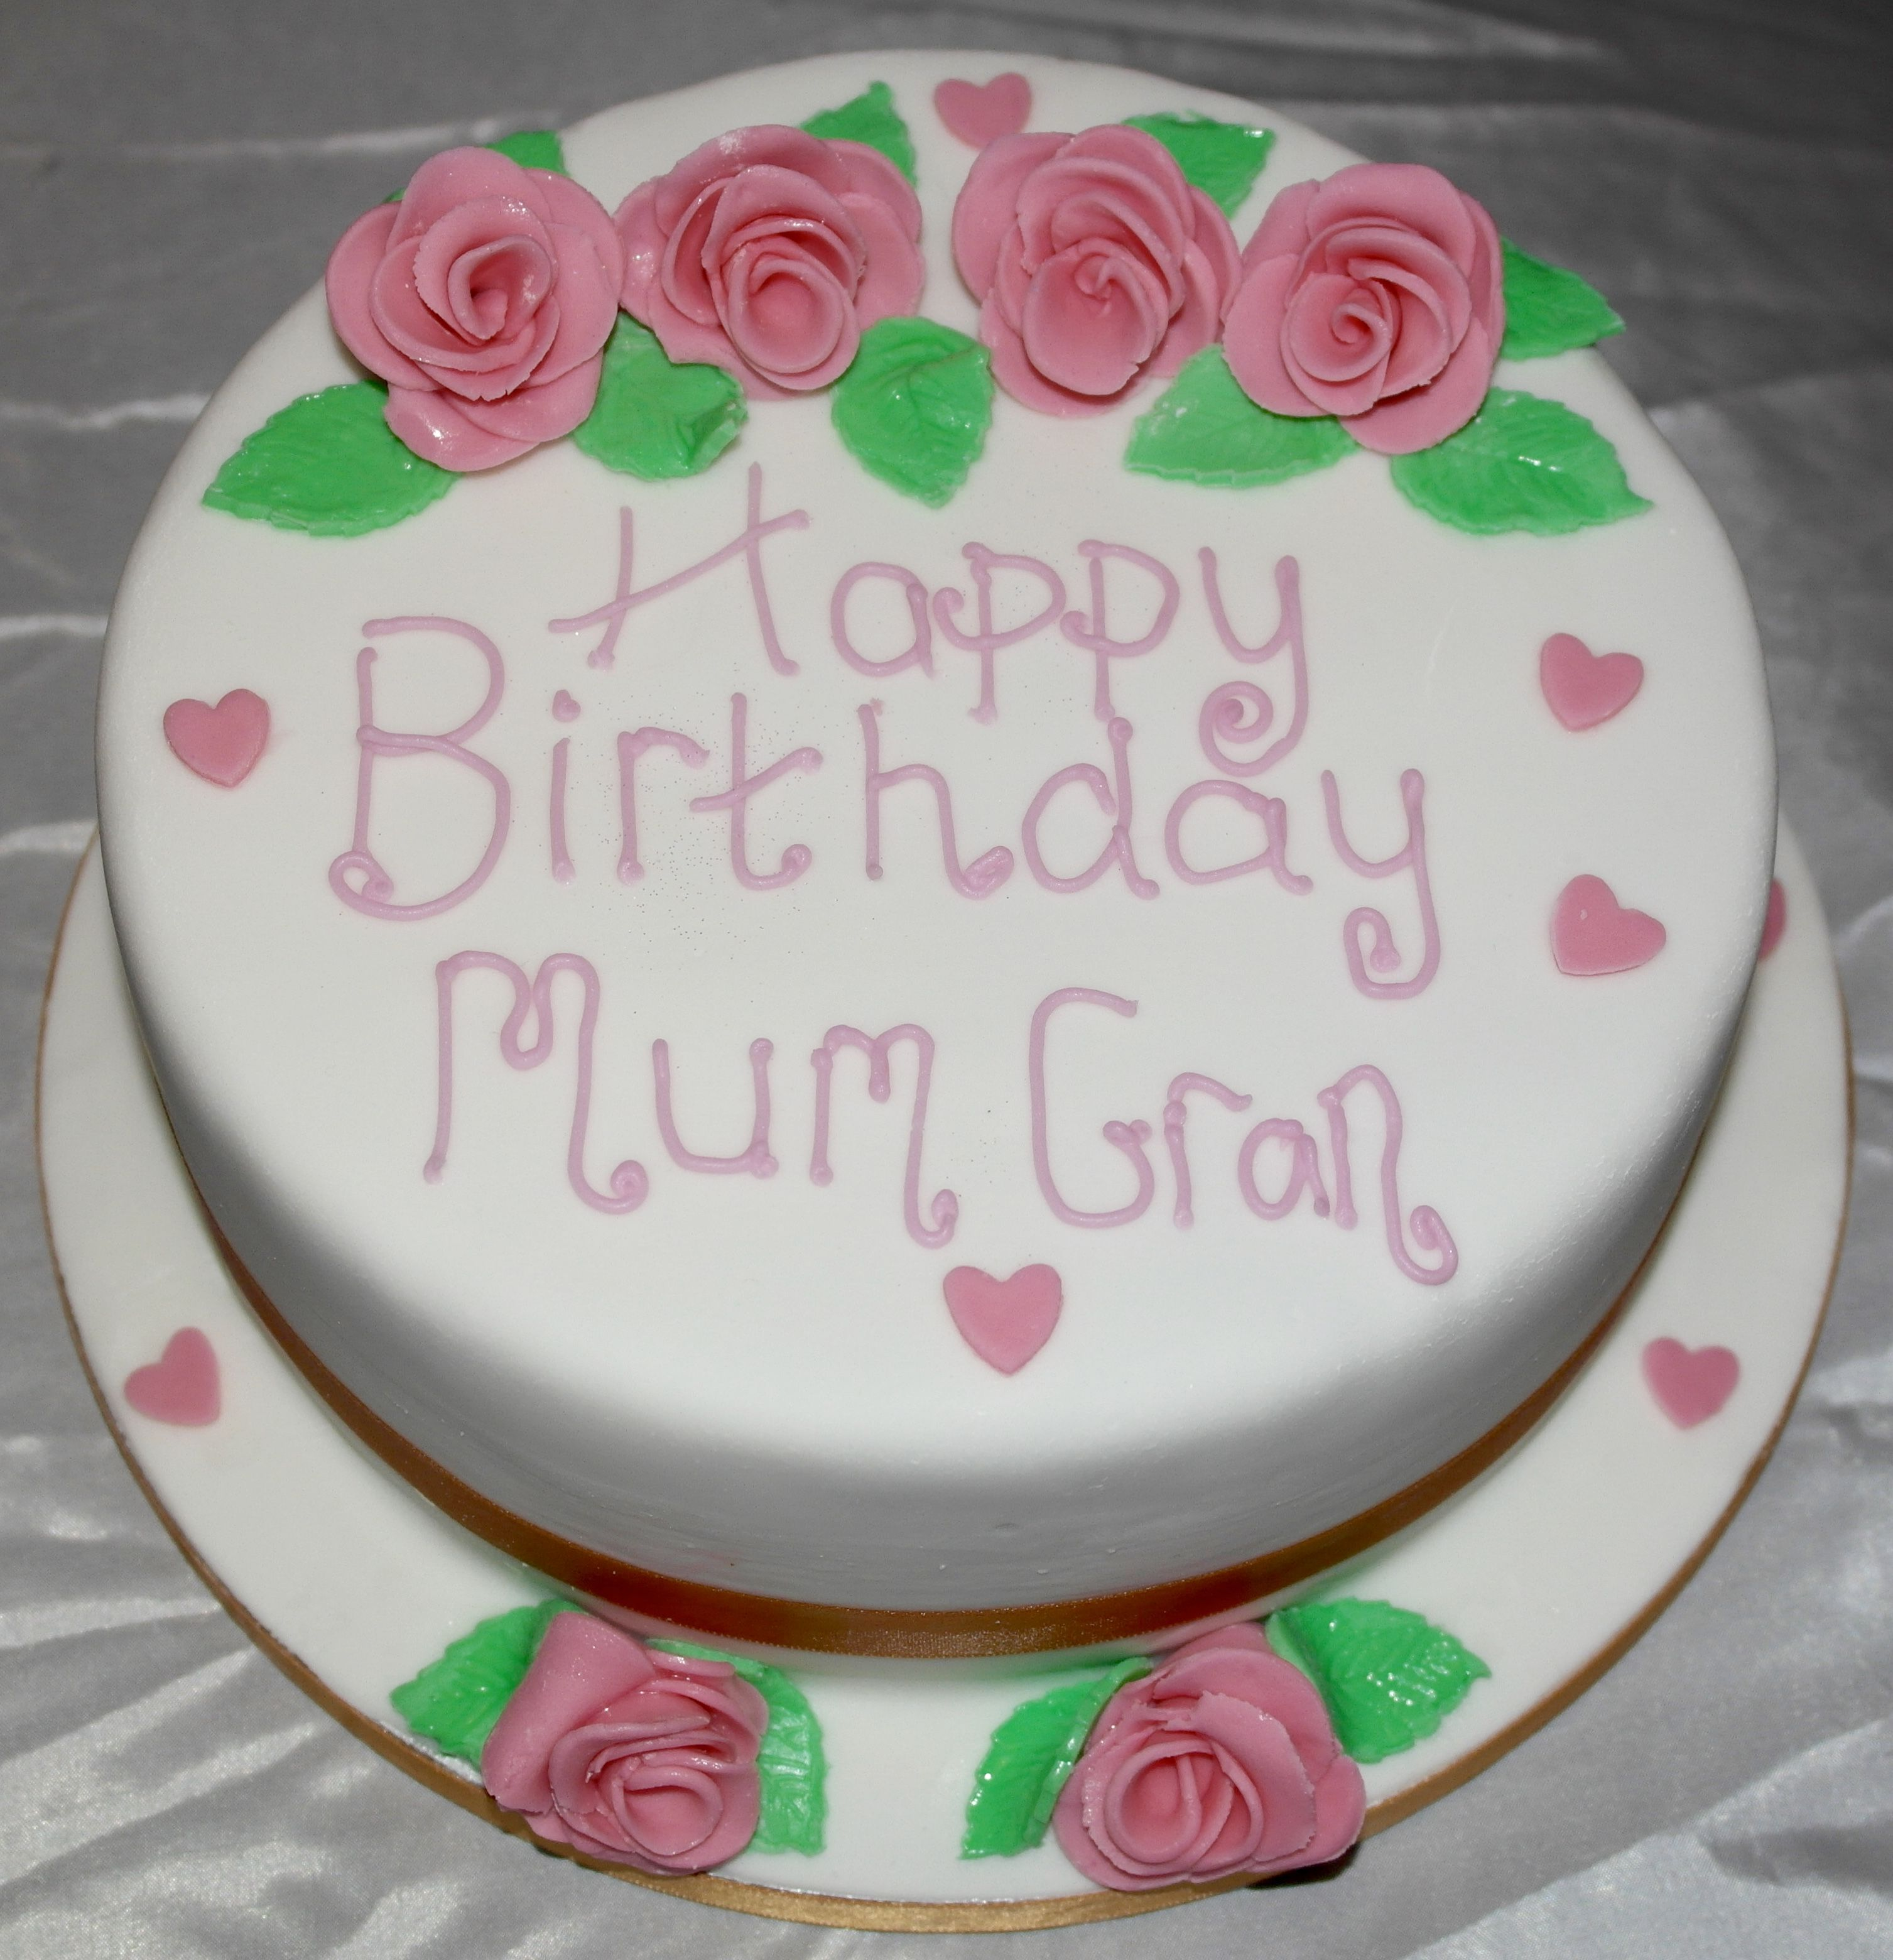 Mum Gran Birthday Cake Rum Cake With Fondant Flower Decorations